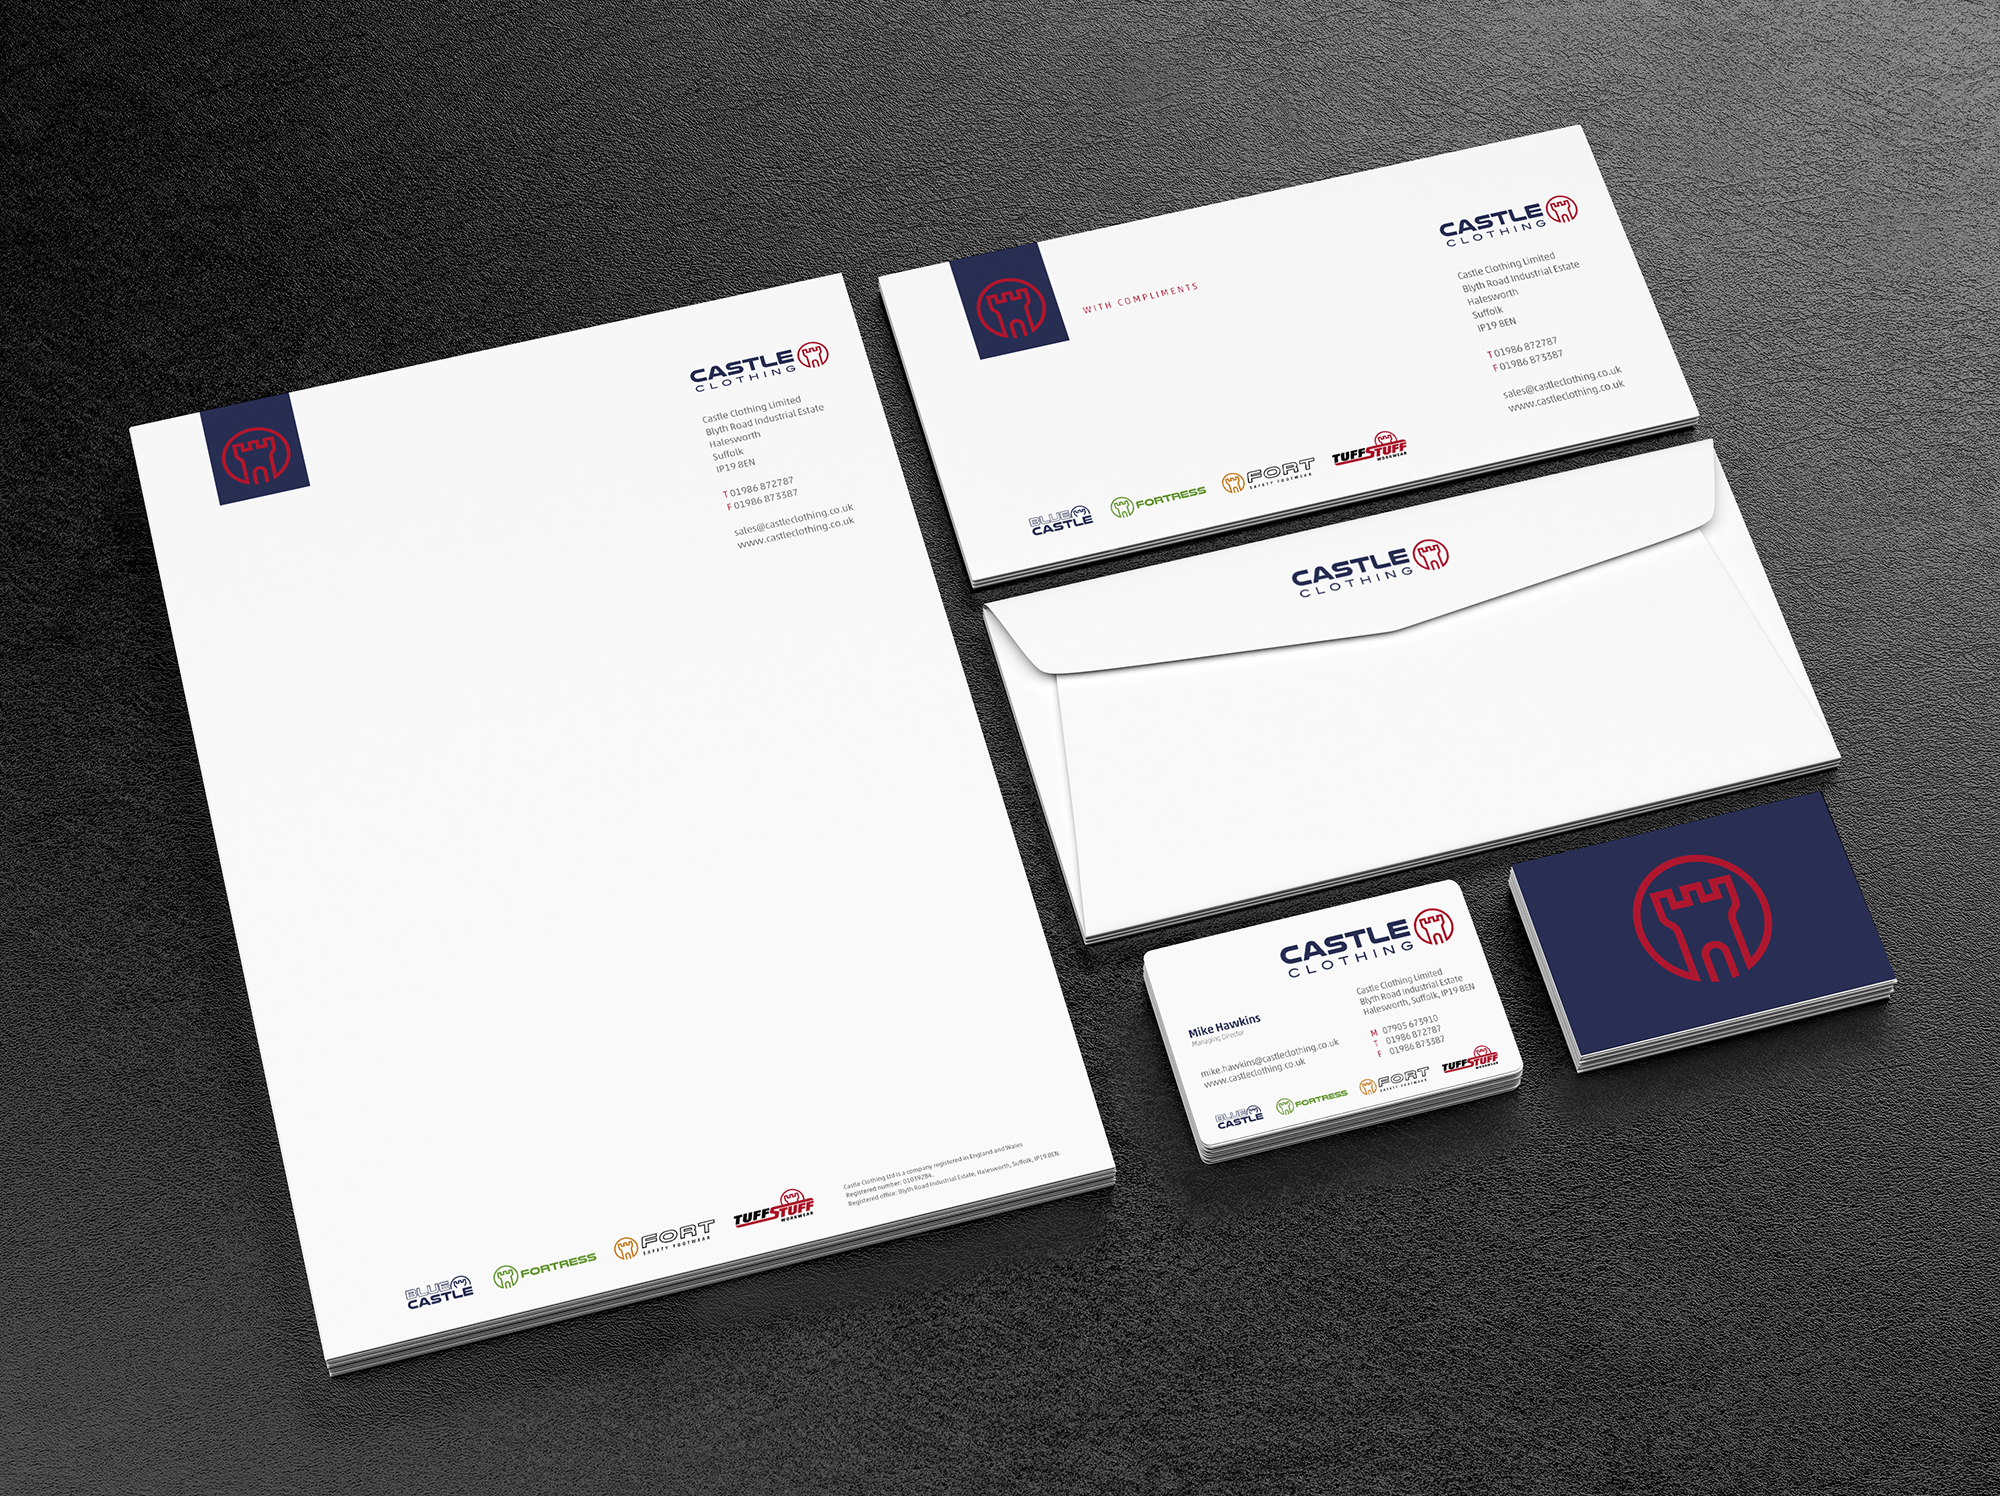 Blank corporate identity template on black leather background